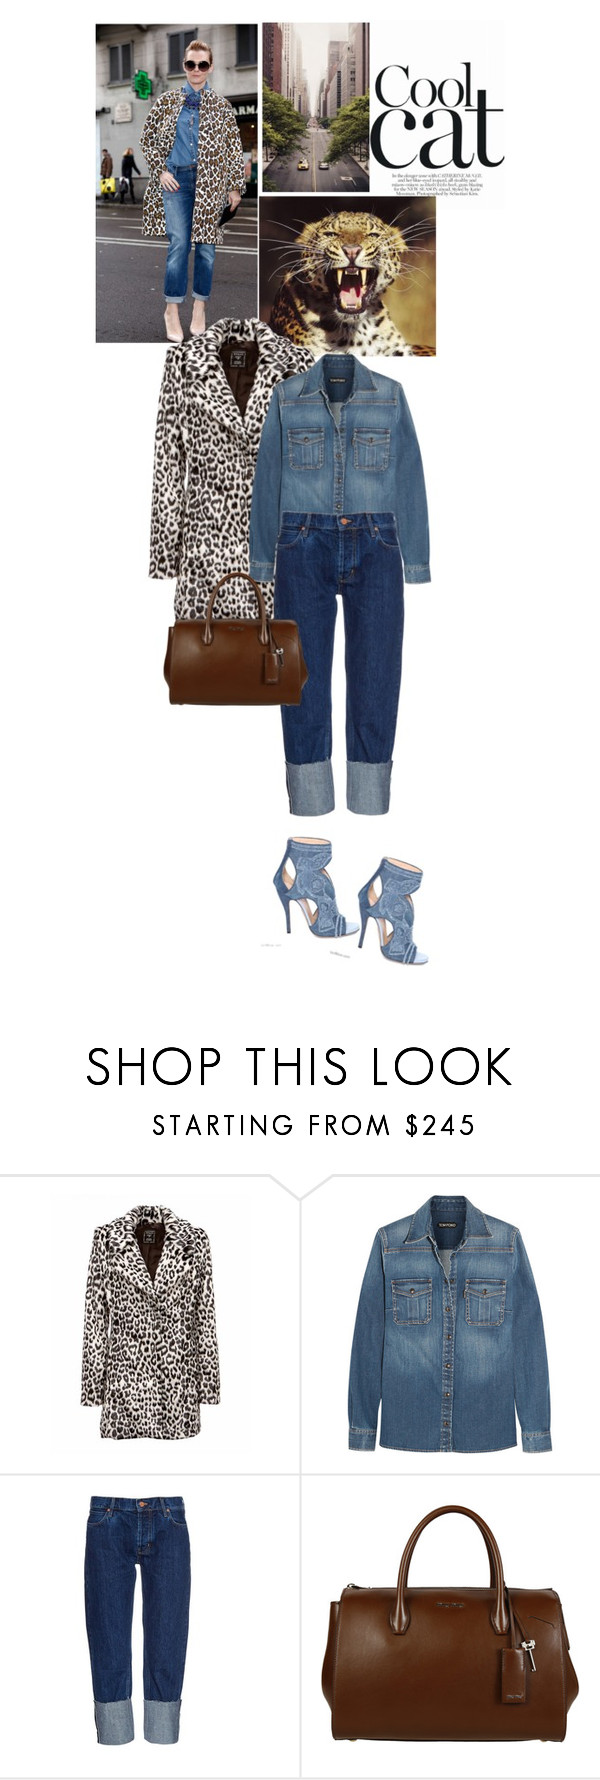 """""""Título 251"""" by drigomes ❤ liked on Polyvore featuring Calle, Tom Ford, MiH Jeans and Miu Miu"""